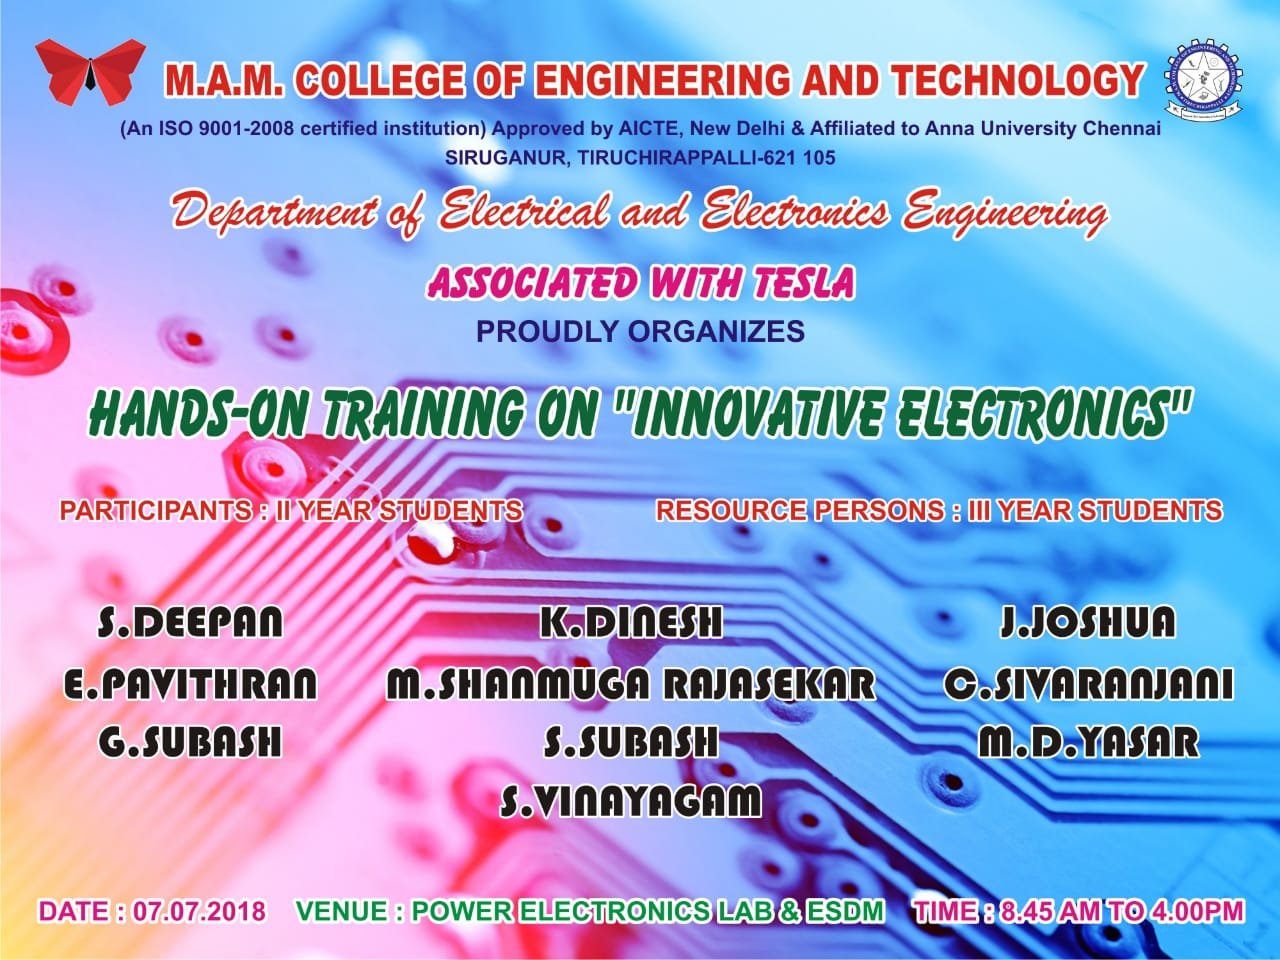 Mamcet Mam College Of Engineering And Technology Mr Electrical Electronics Projects For Dummies Hands On Training Innovative Organized By Department Eee